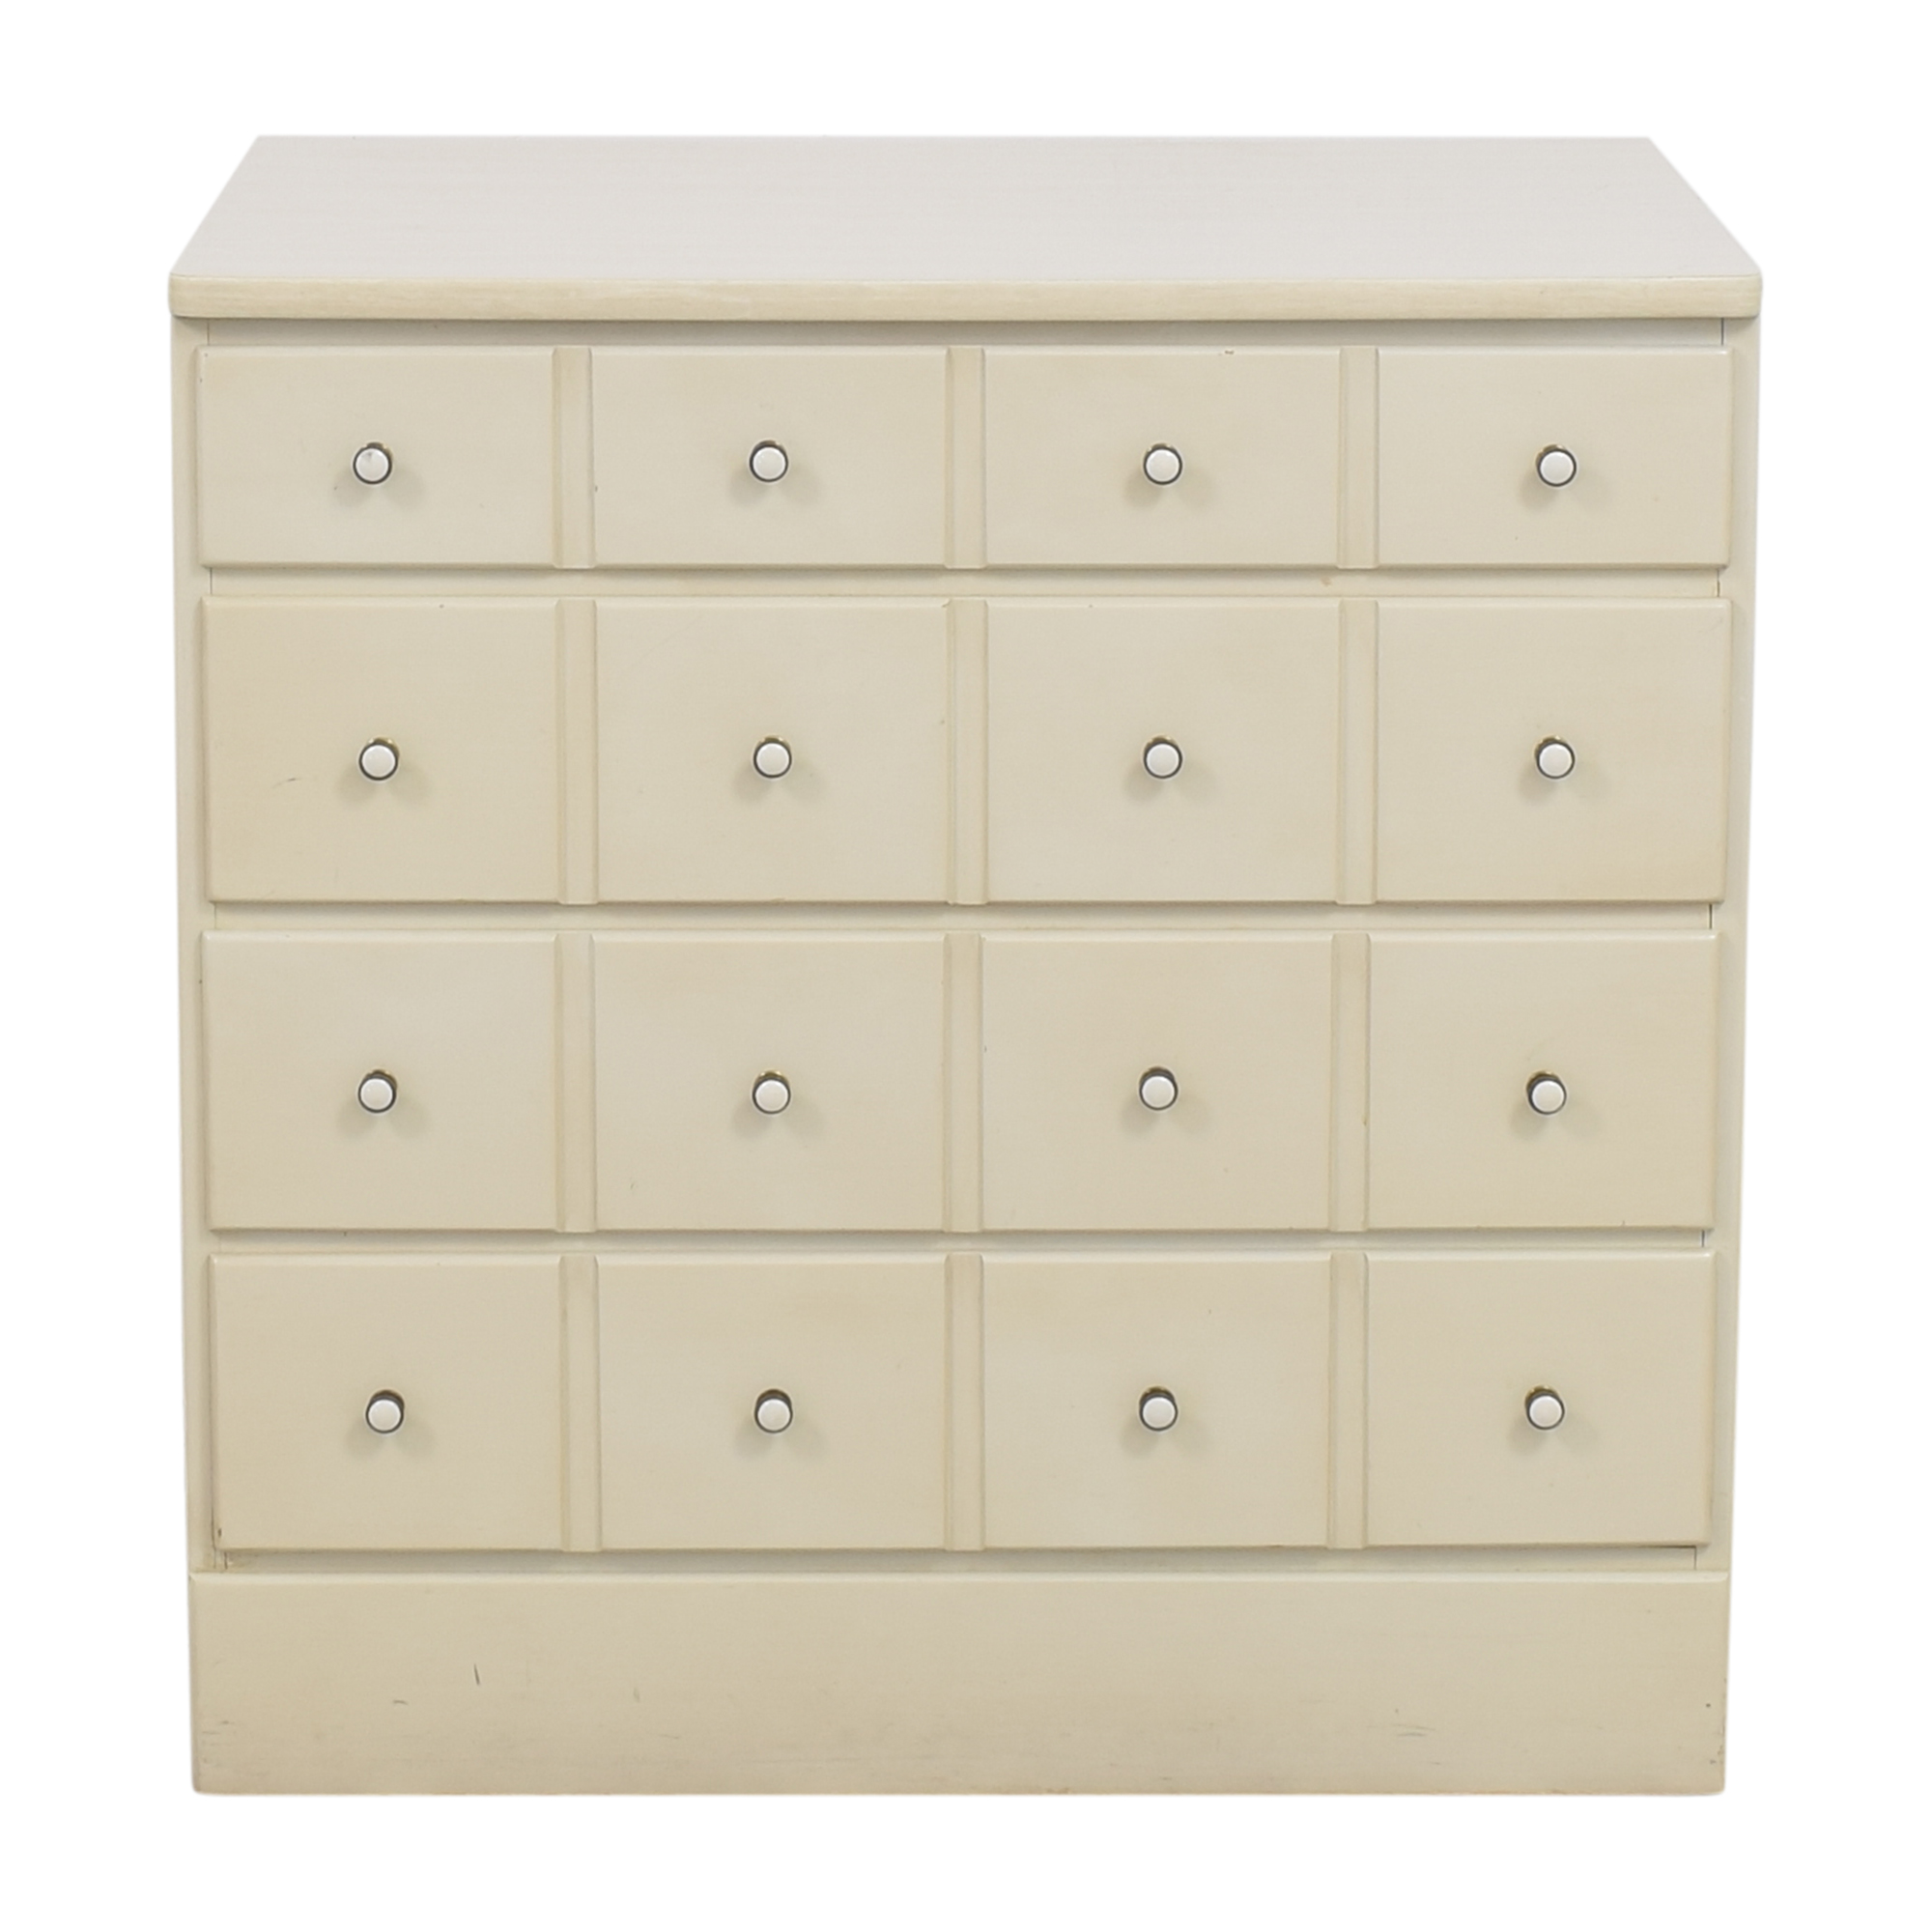 buy Ethan Allen Apothecary Style Four Drawer Dresser Ethan Allen Storage